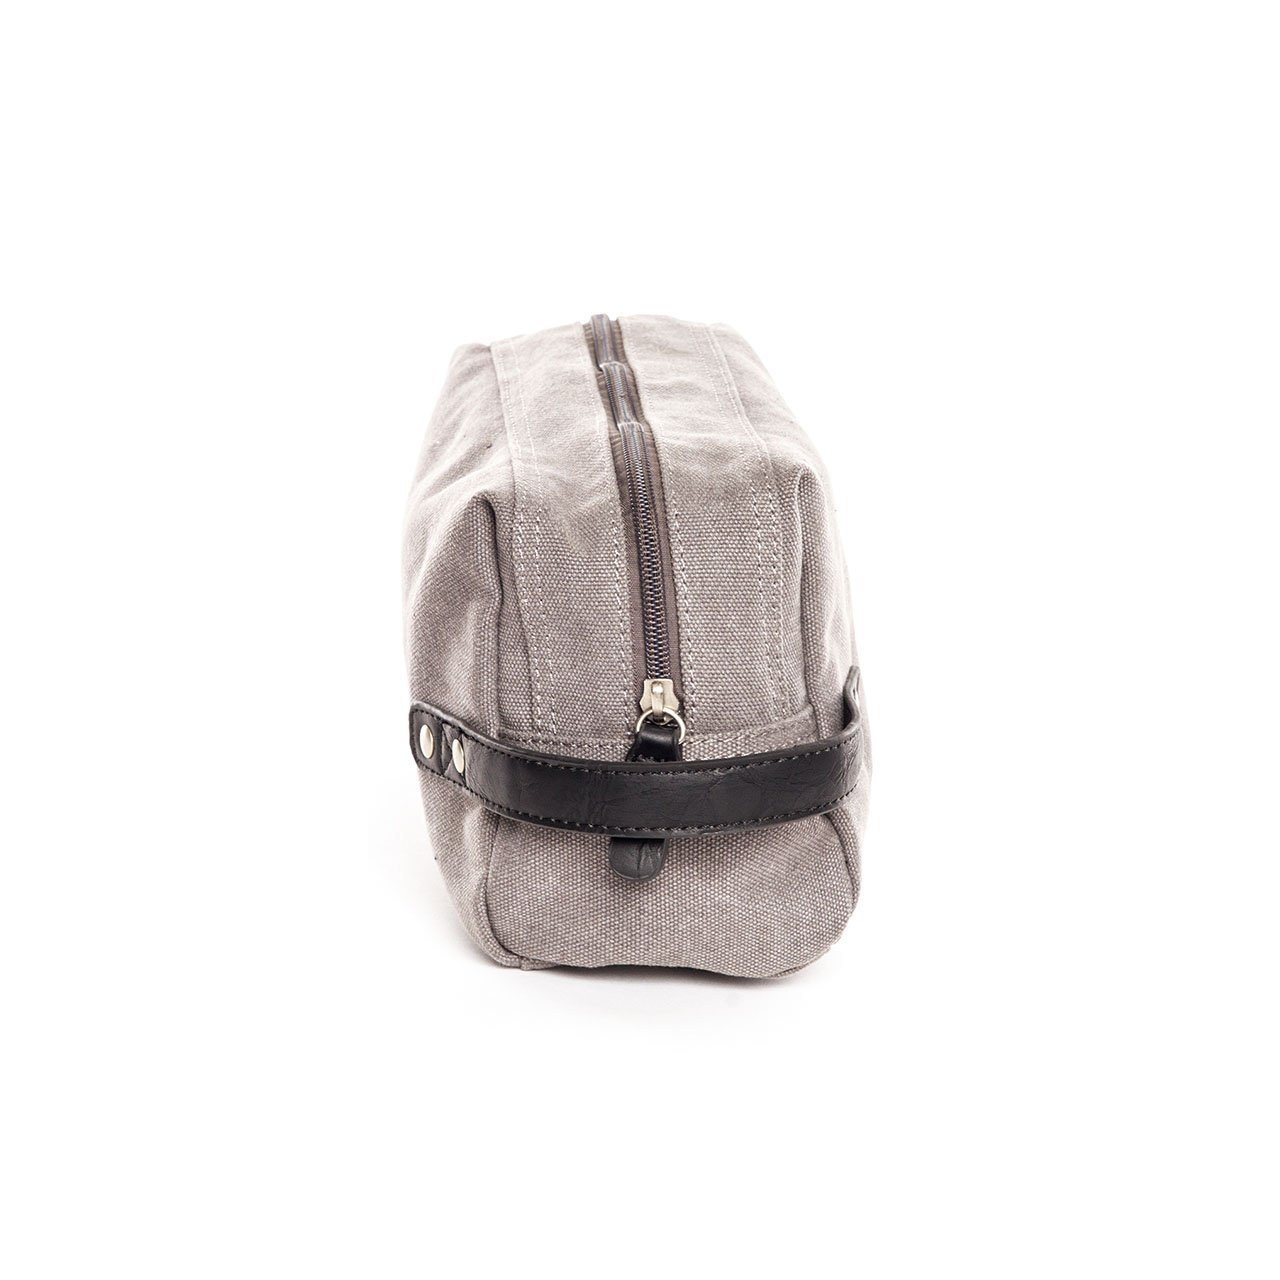 Dopp Kit - Dalton Dopp Kit